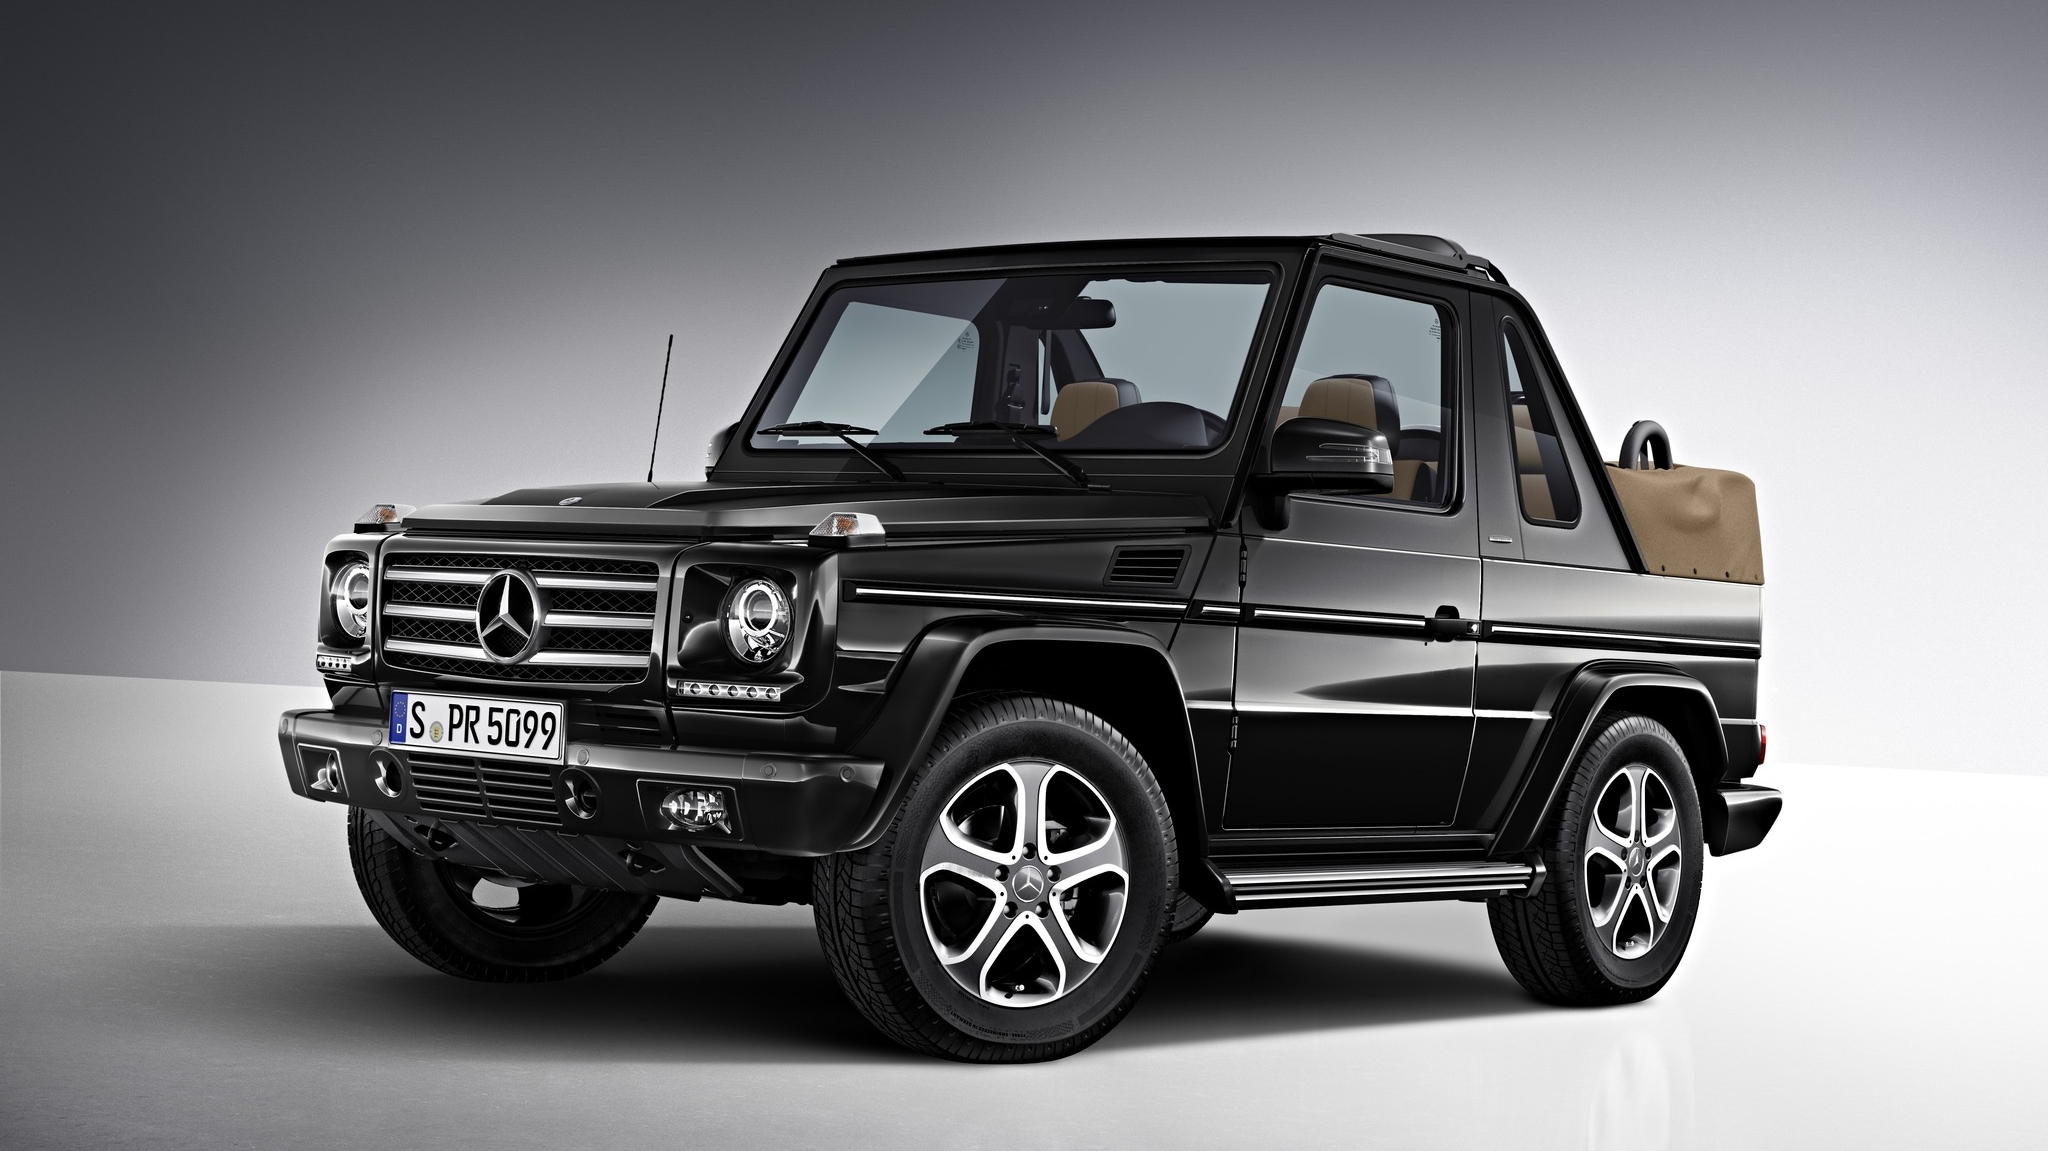 Mercedes-Benz G-klasse II (W463) Restyling 4 2015 - now SUV 5 door #2